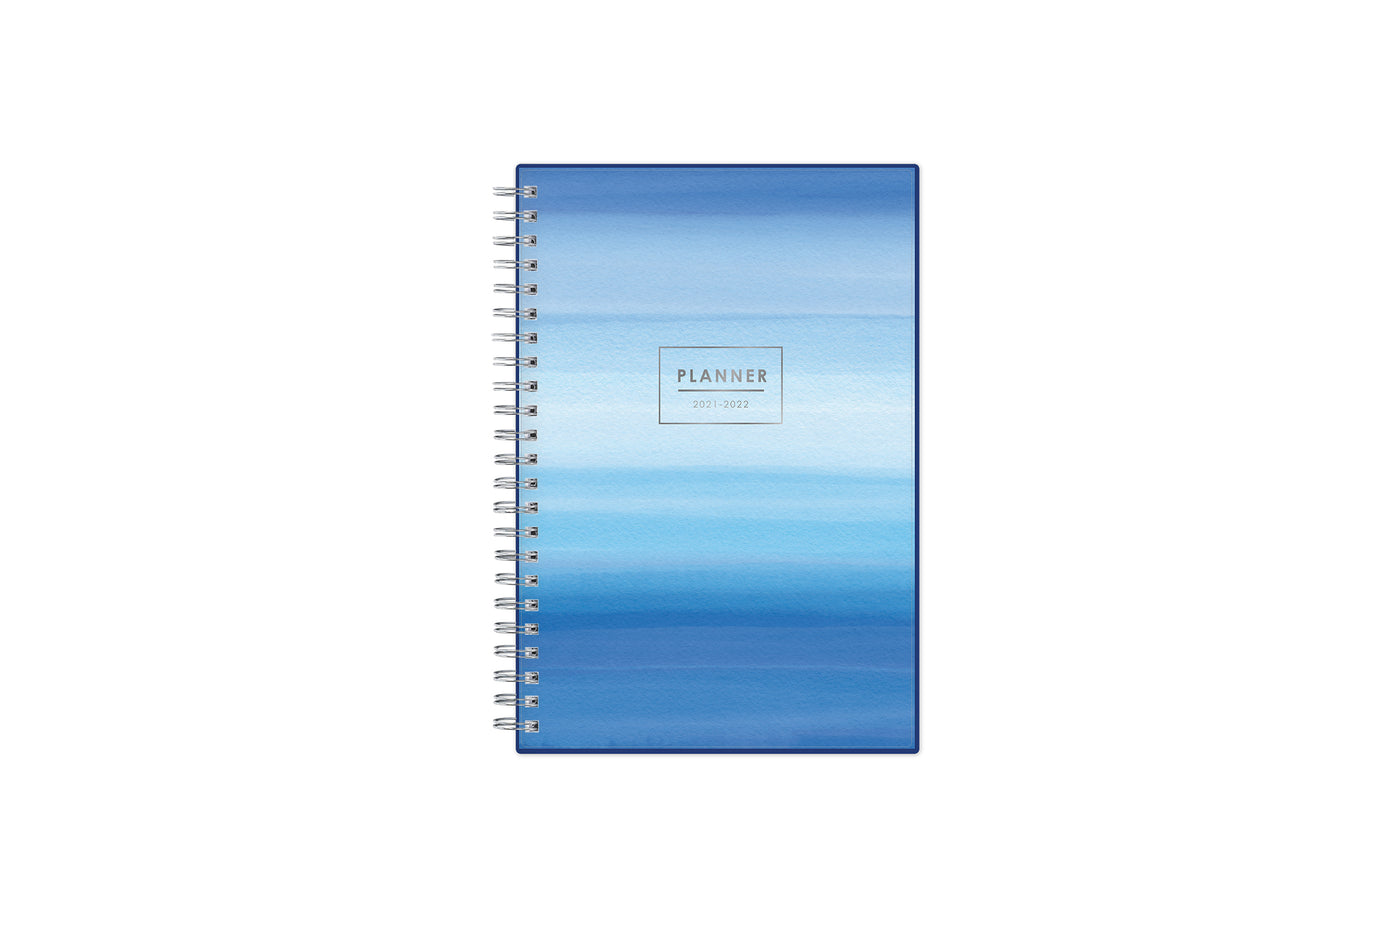 June 2021-2022 monthly planner for academic year featuring a classic wavy palette of blue pattern, silver twin wire-o binding, and in a compact 5x8 planner size